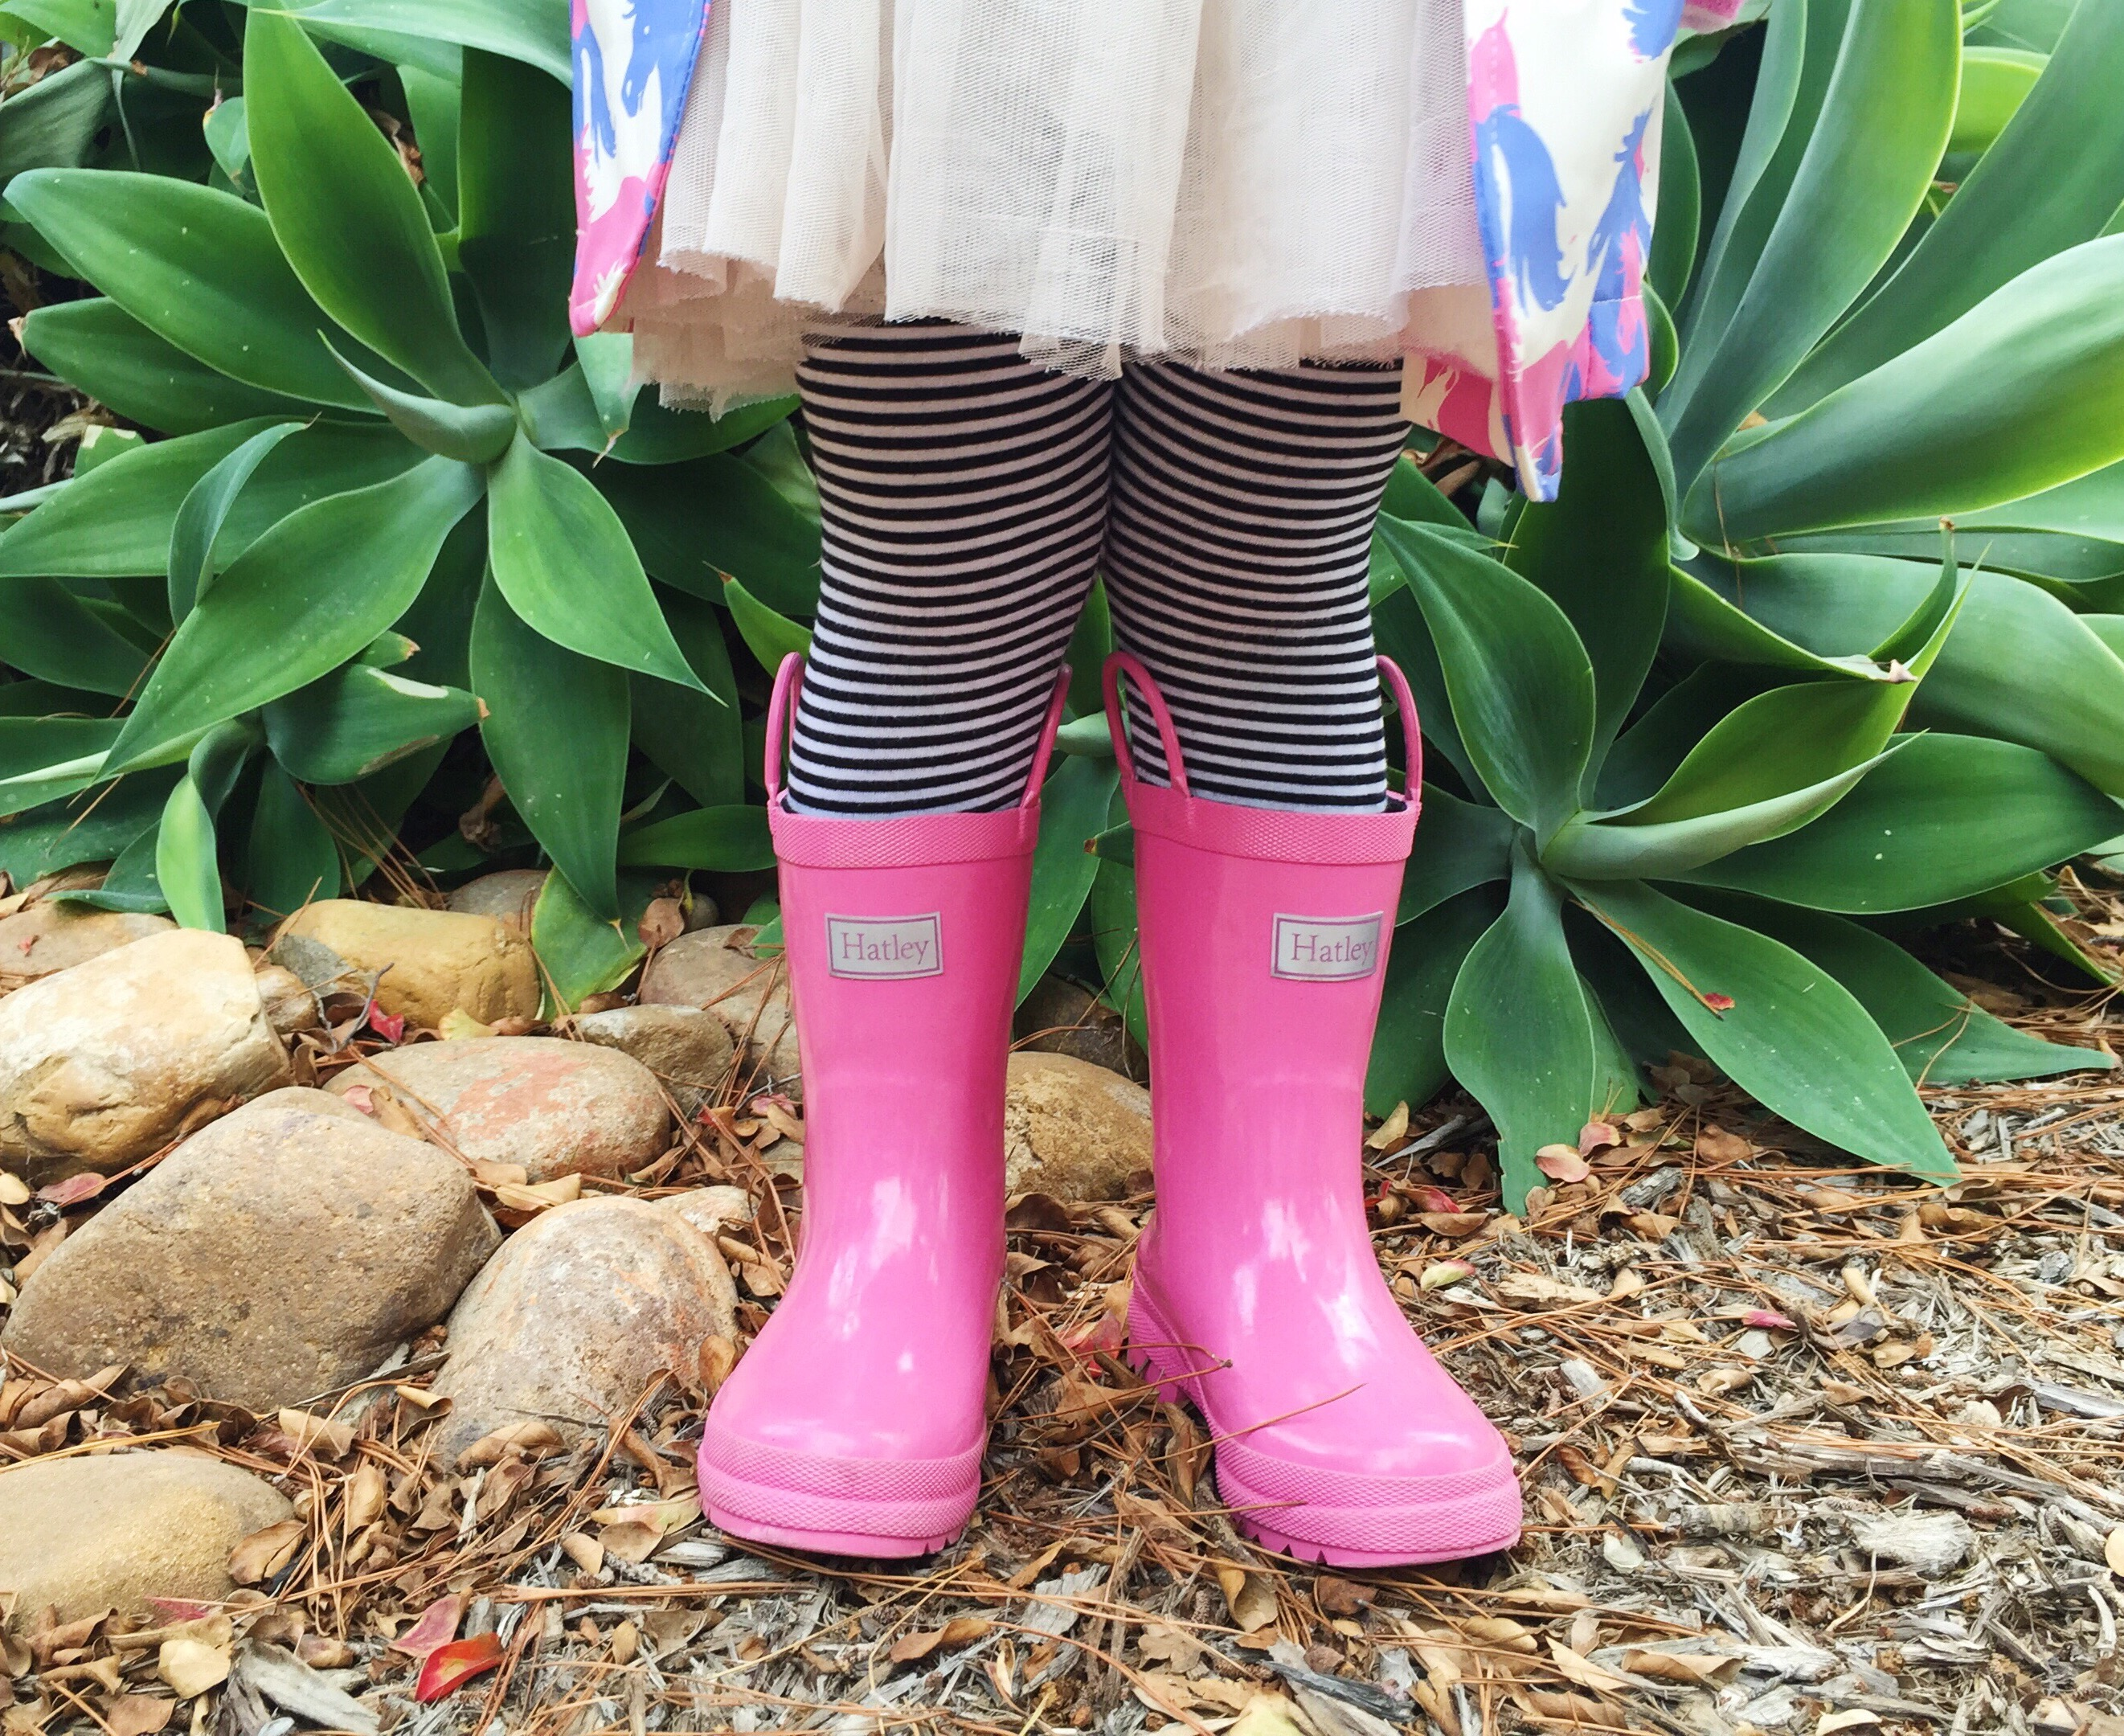 Kids Rain Boots. Help kids stay warm and dry in even the stormiest weather with the right footwear—a pair of stylish kids rain boots. Rain boots are a great choice for any outing that might involve walking through water, from puddles in the rain to ponds or wading pools.